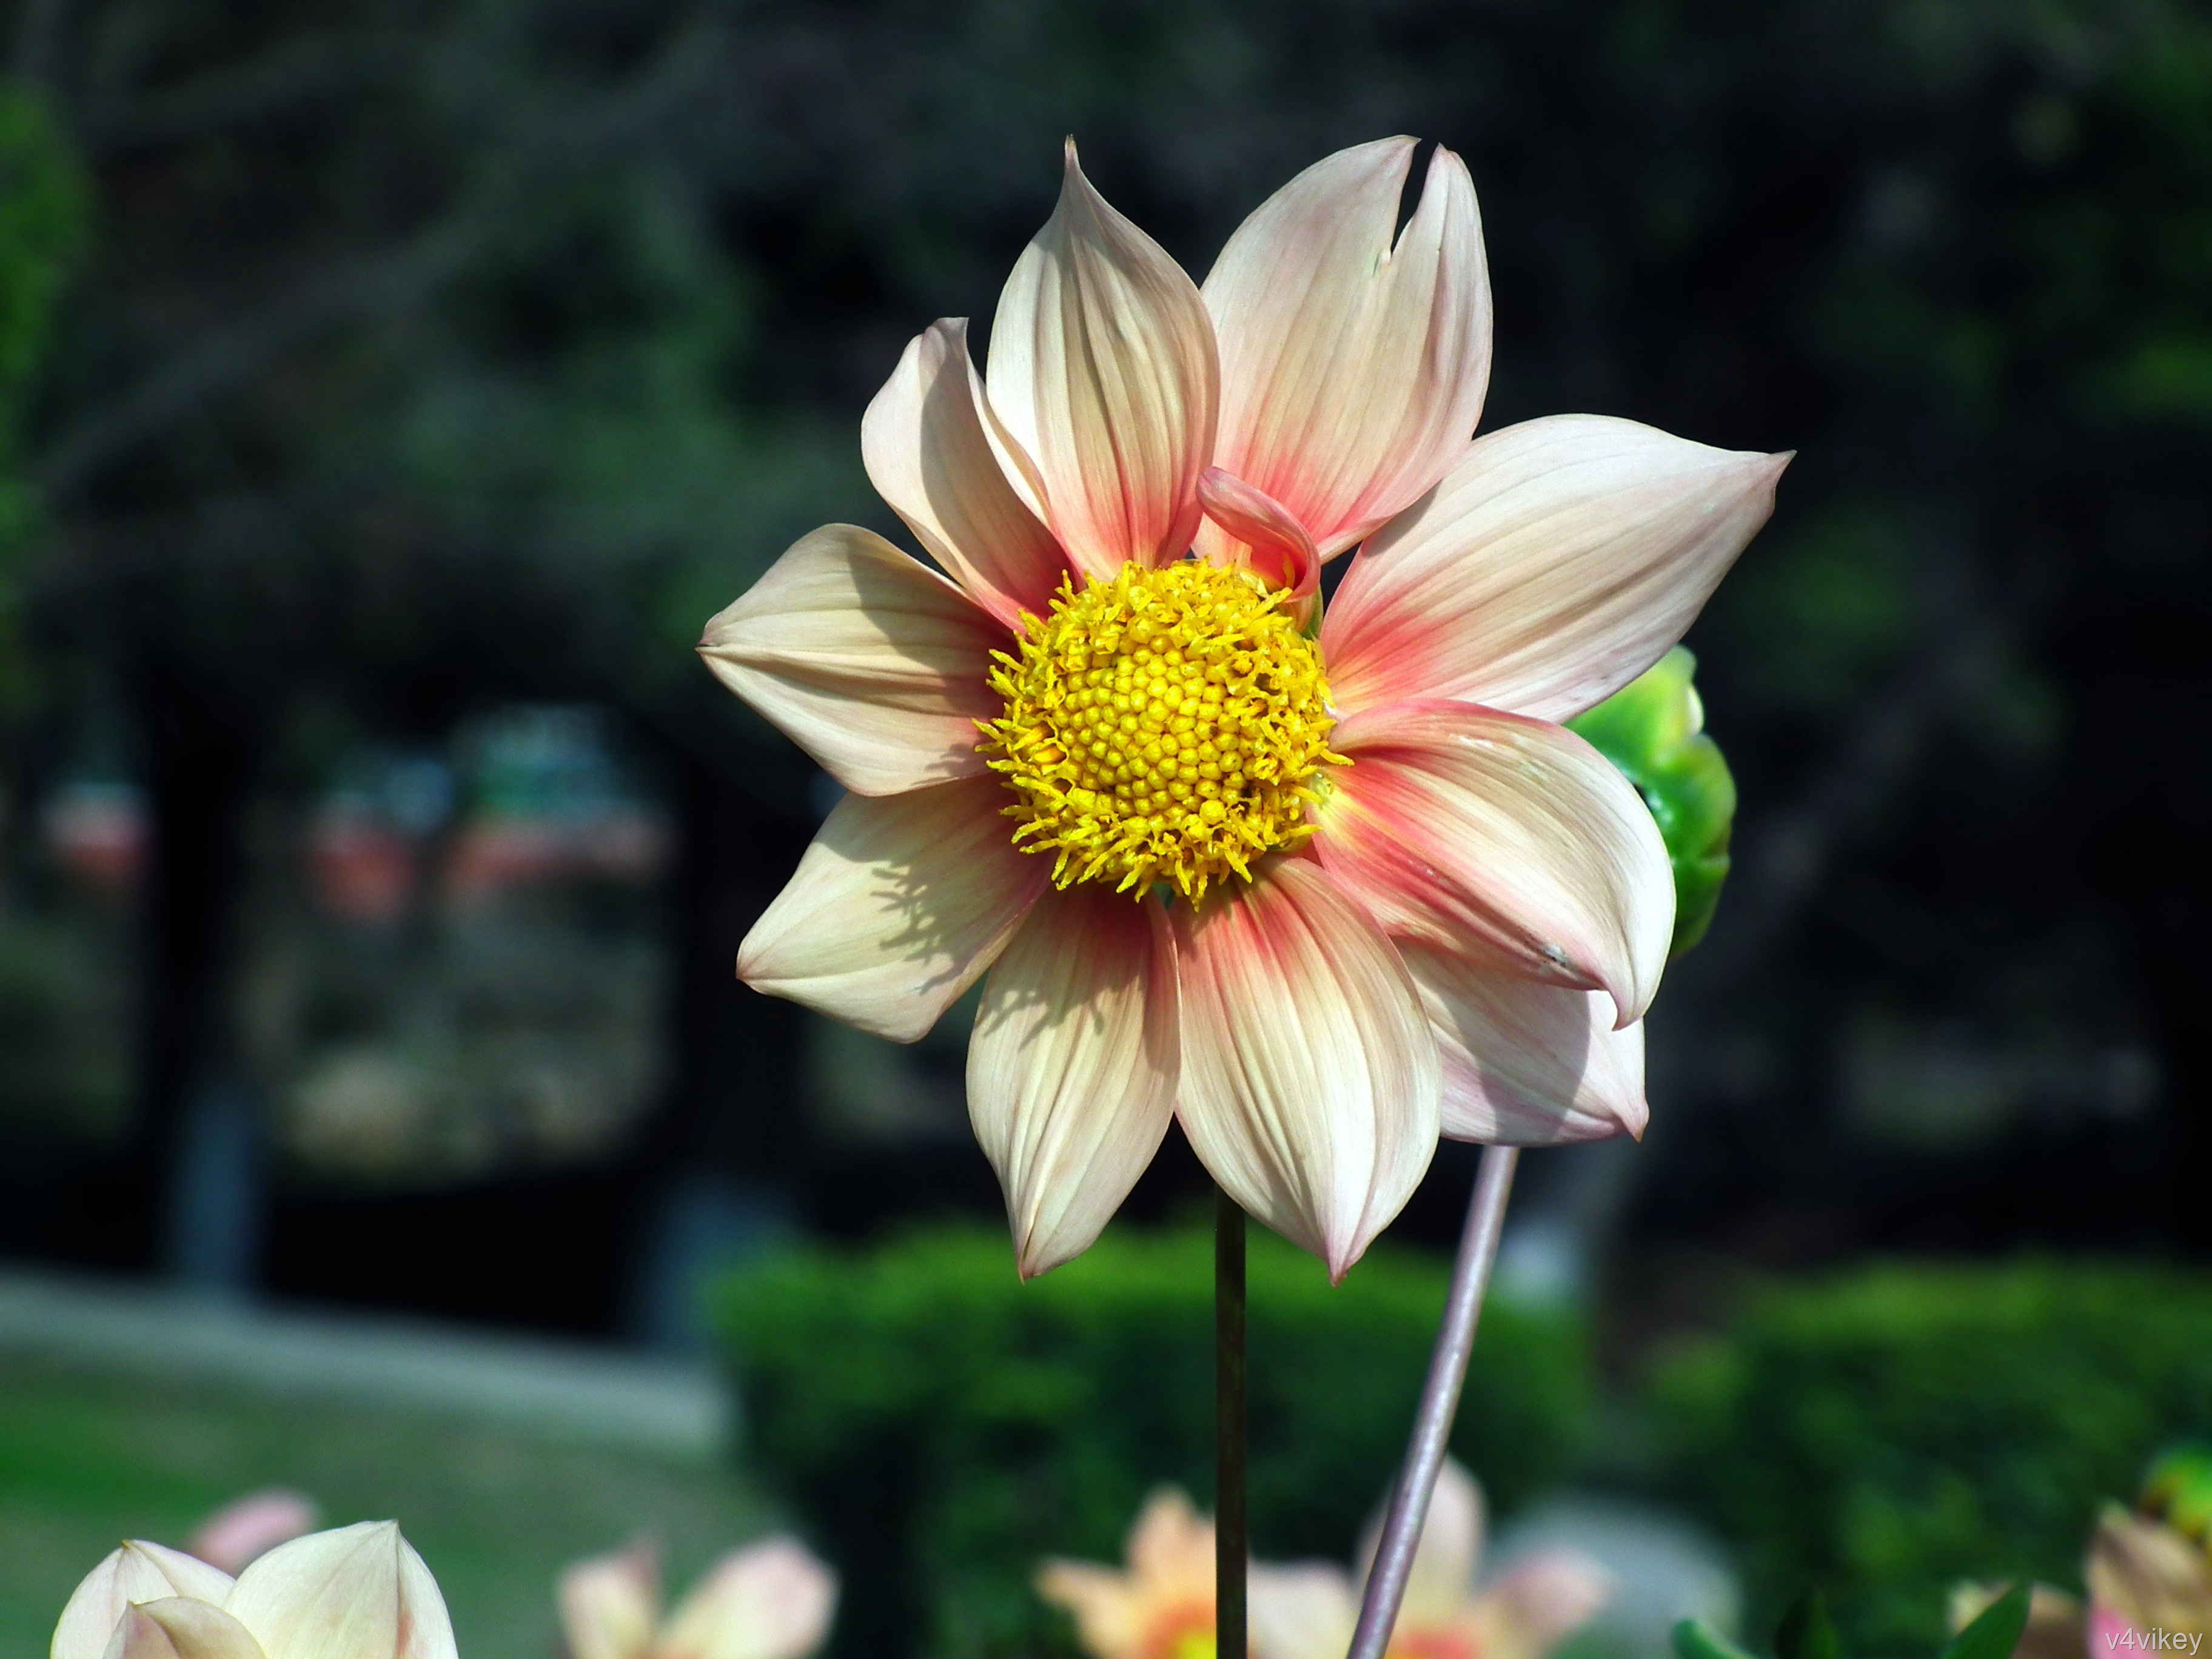 Happy gugi apricot color dahlia wallpaper for Portent of betrayal